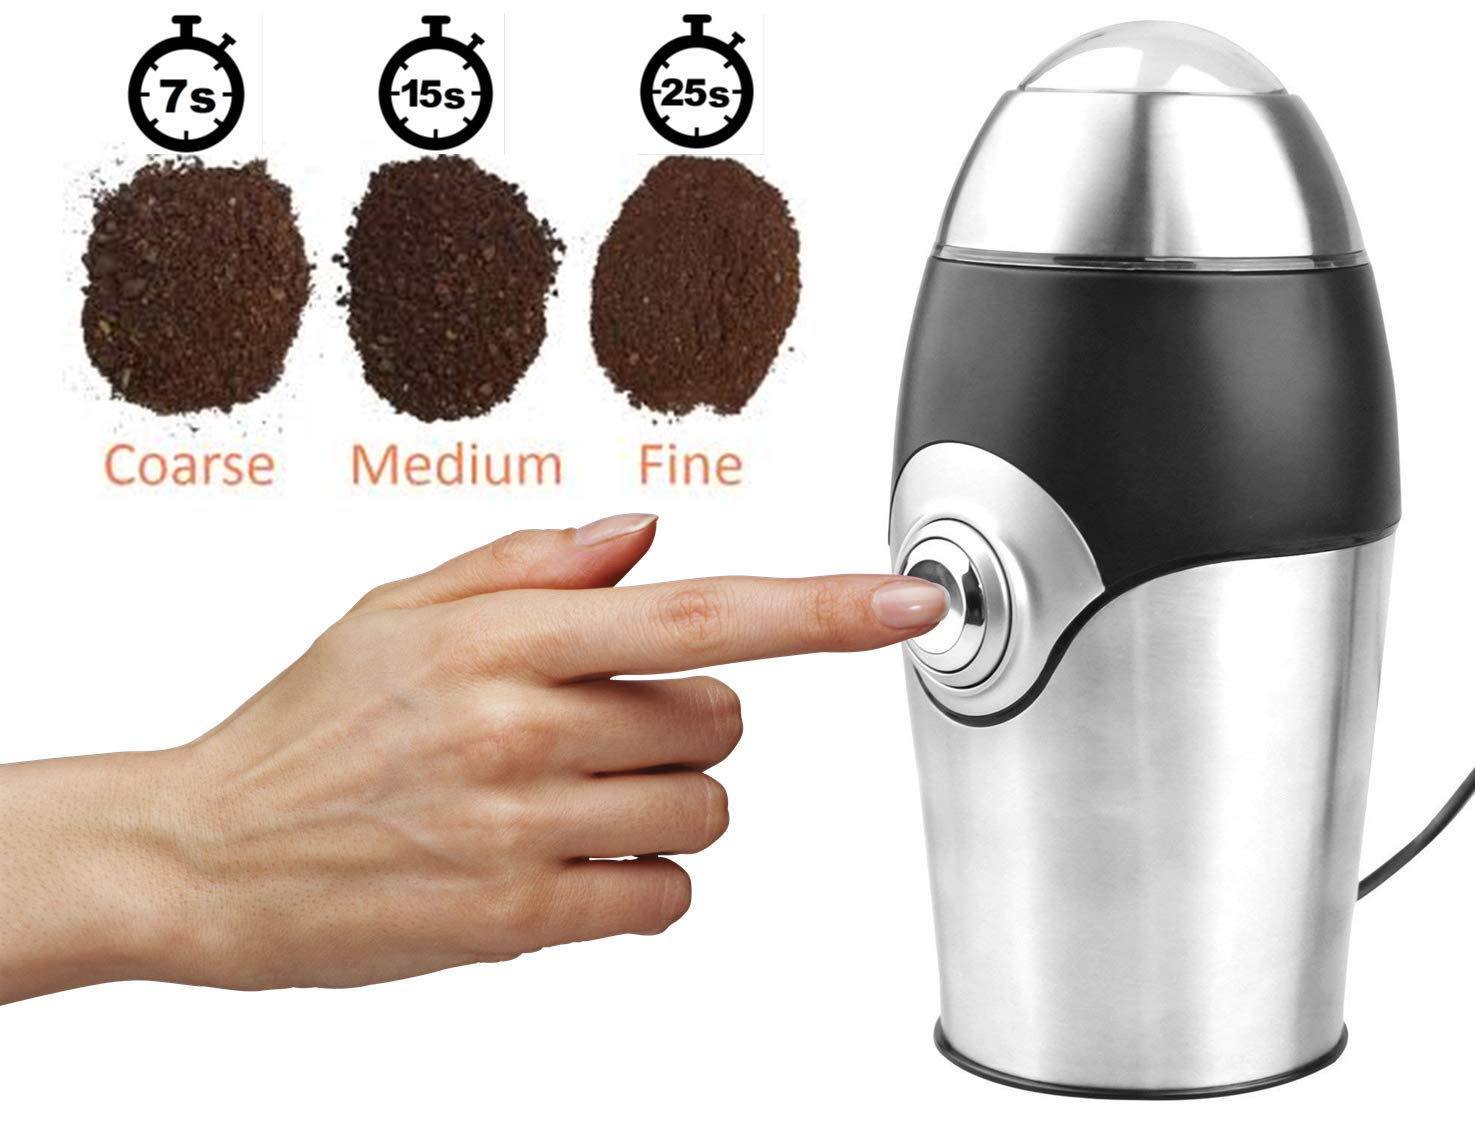 Electric Coffee Grinder Herb Grinder Spice Grinder Mini Grinder All-In-One, includes 1 oz Scoop and Cleaning Brush - 200 Watt by GoldTone (Image #2)